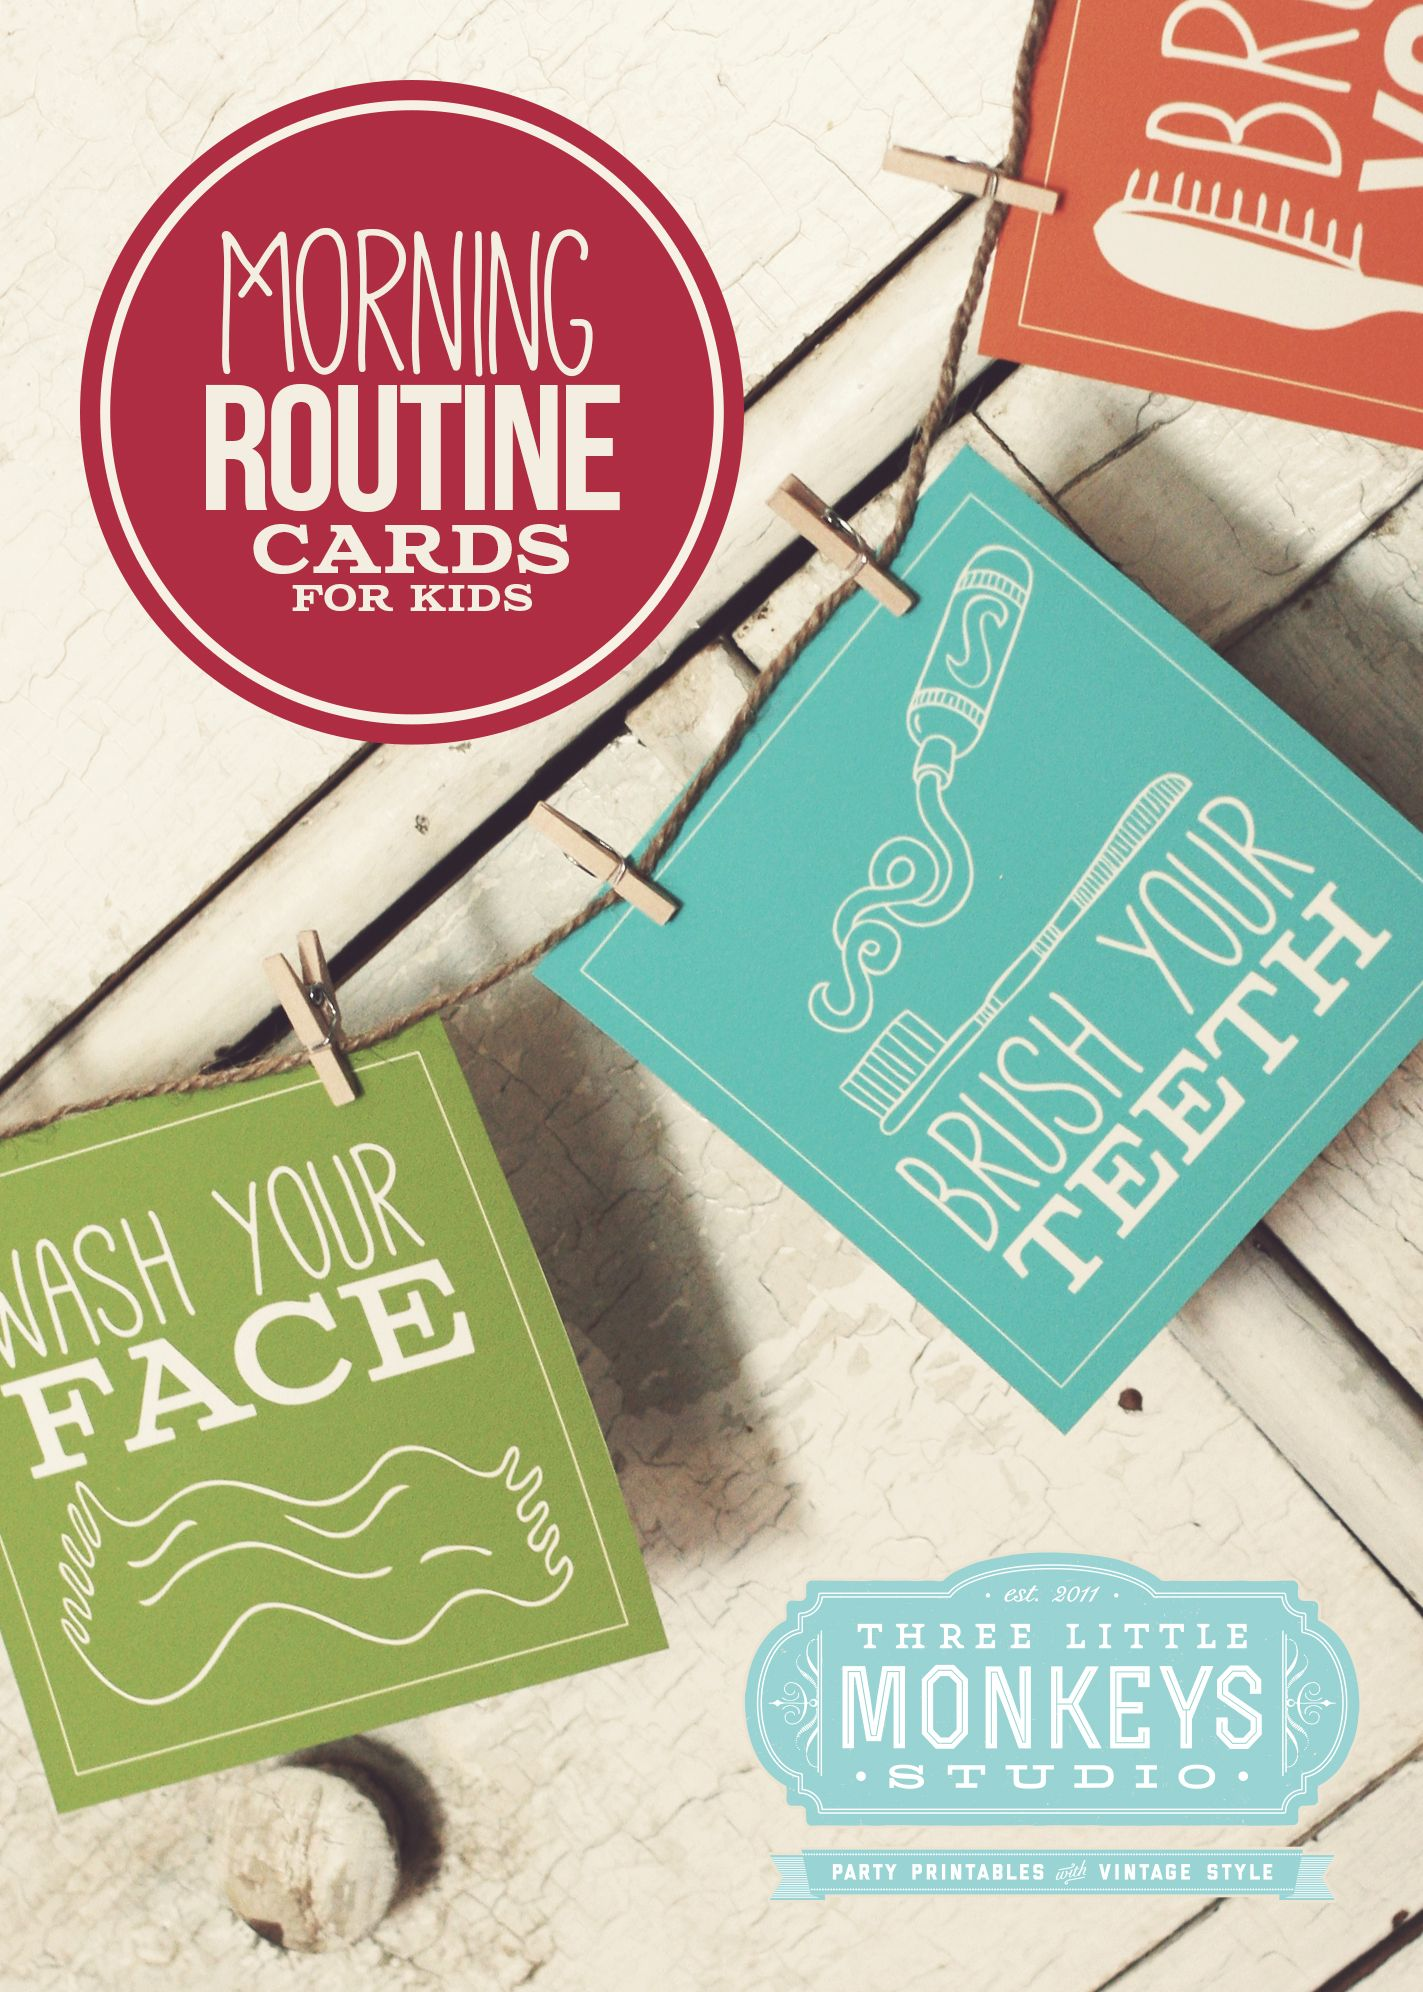 Morning Routine Cards For Kids By Three Little Monkeys